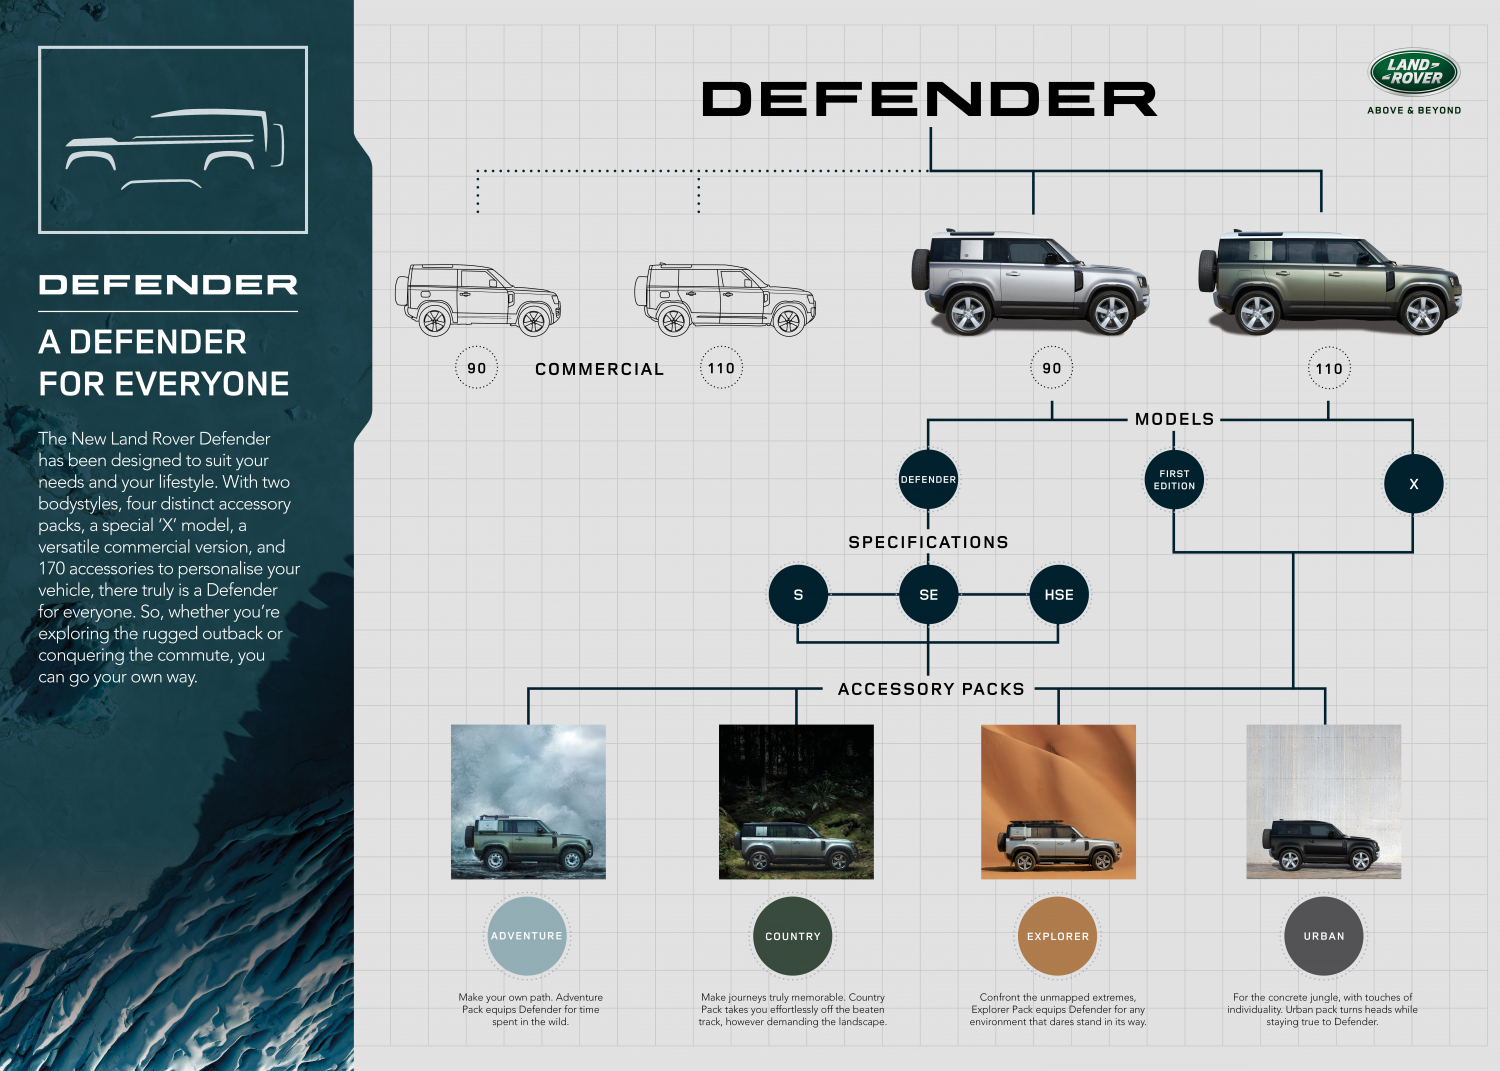 Overview: Introducing the New Land Rover Defender - Image 1